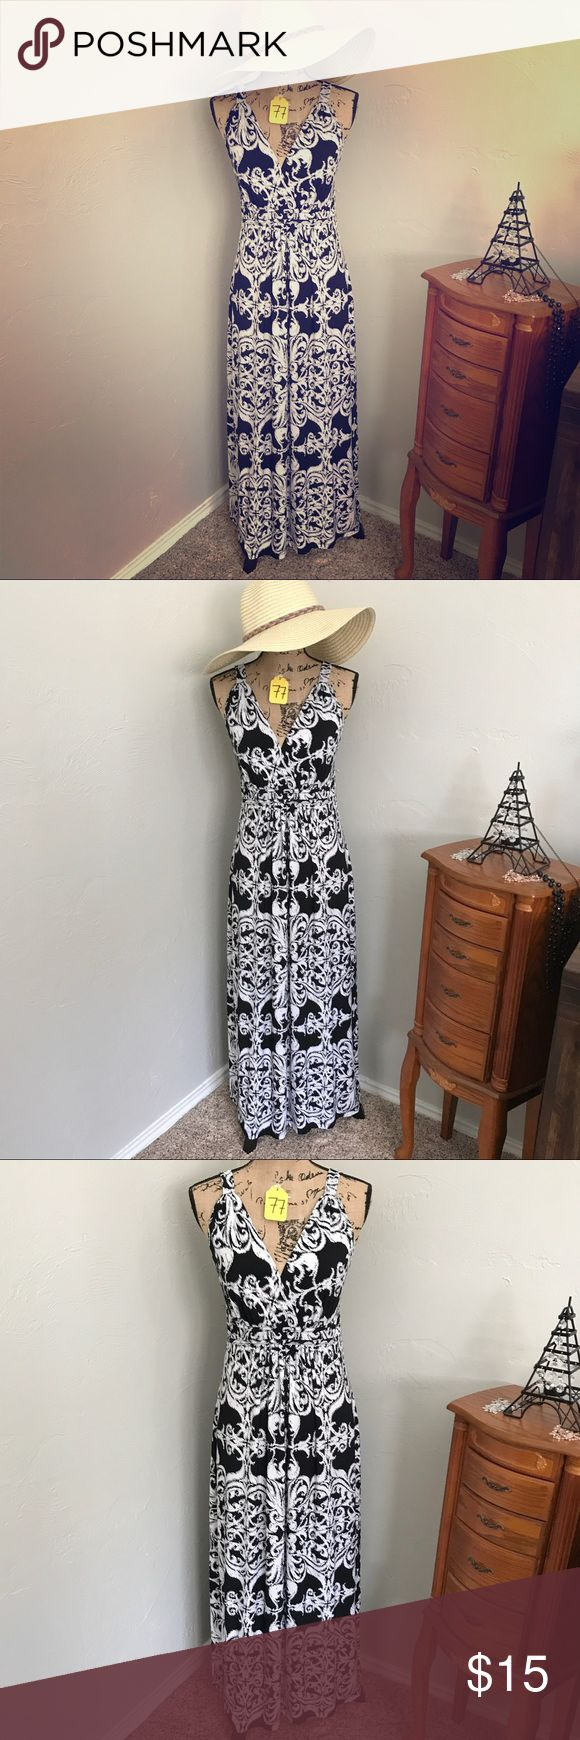 New Directions Petite long black white maxi dress New Directions Petite • Sz Petite Large (measurement photo included, Size.ly) • Black and White classic long dress New Directions Petite Dresses Maxi